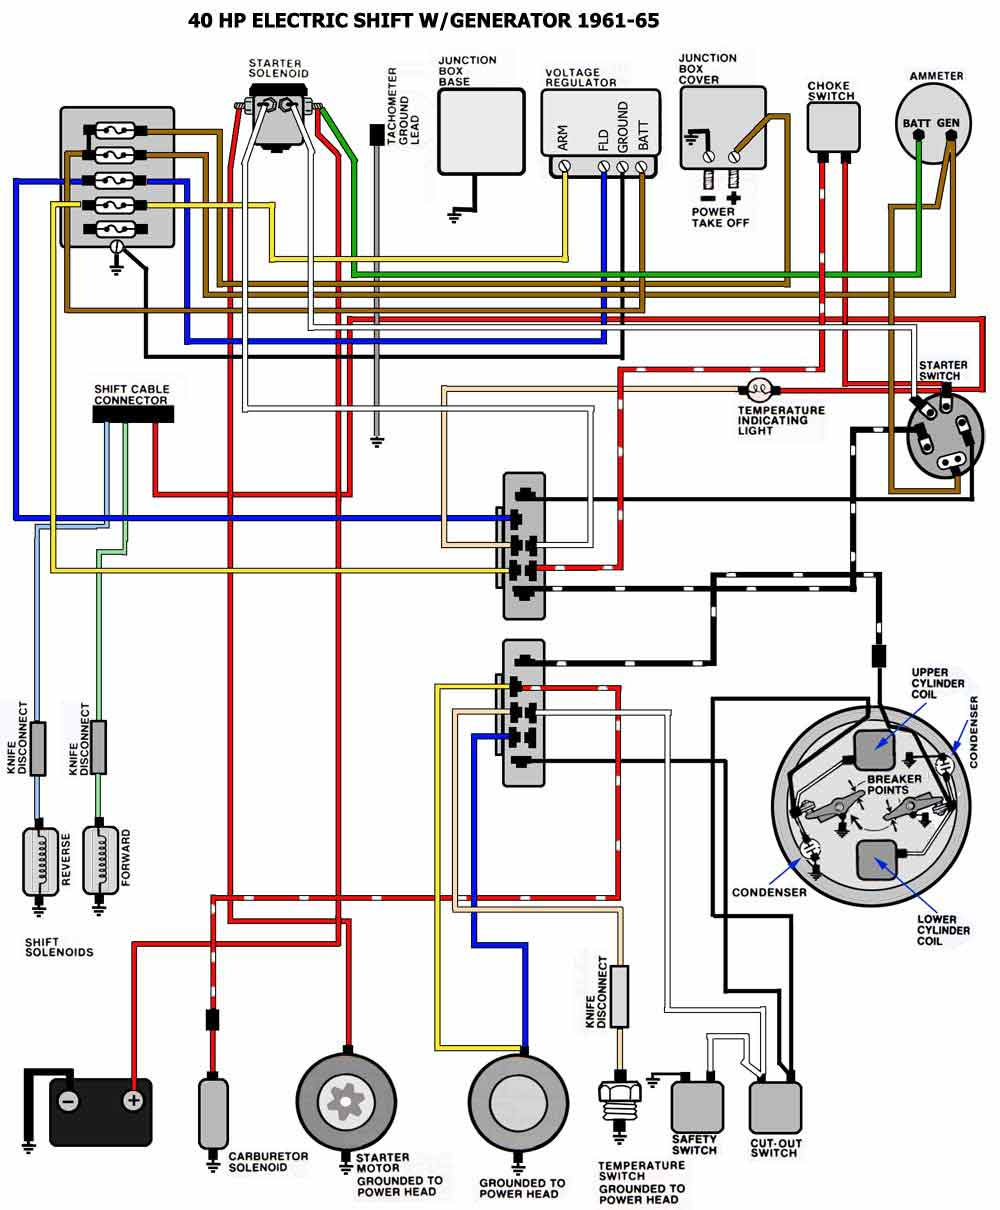 omc ignition wiring diagram schematics online johnson wiring color codes omc 5 7 wiring diagram wiring diagram